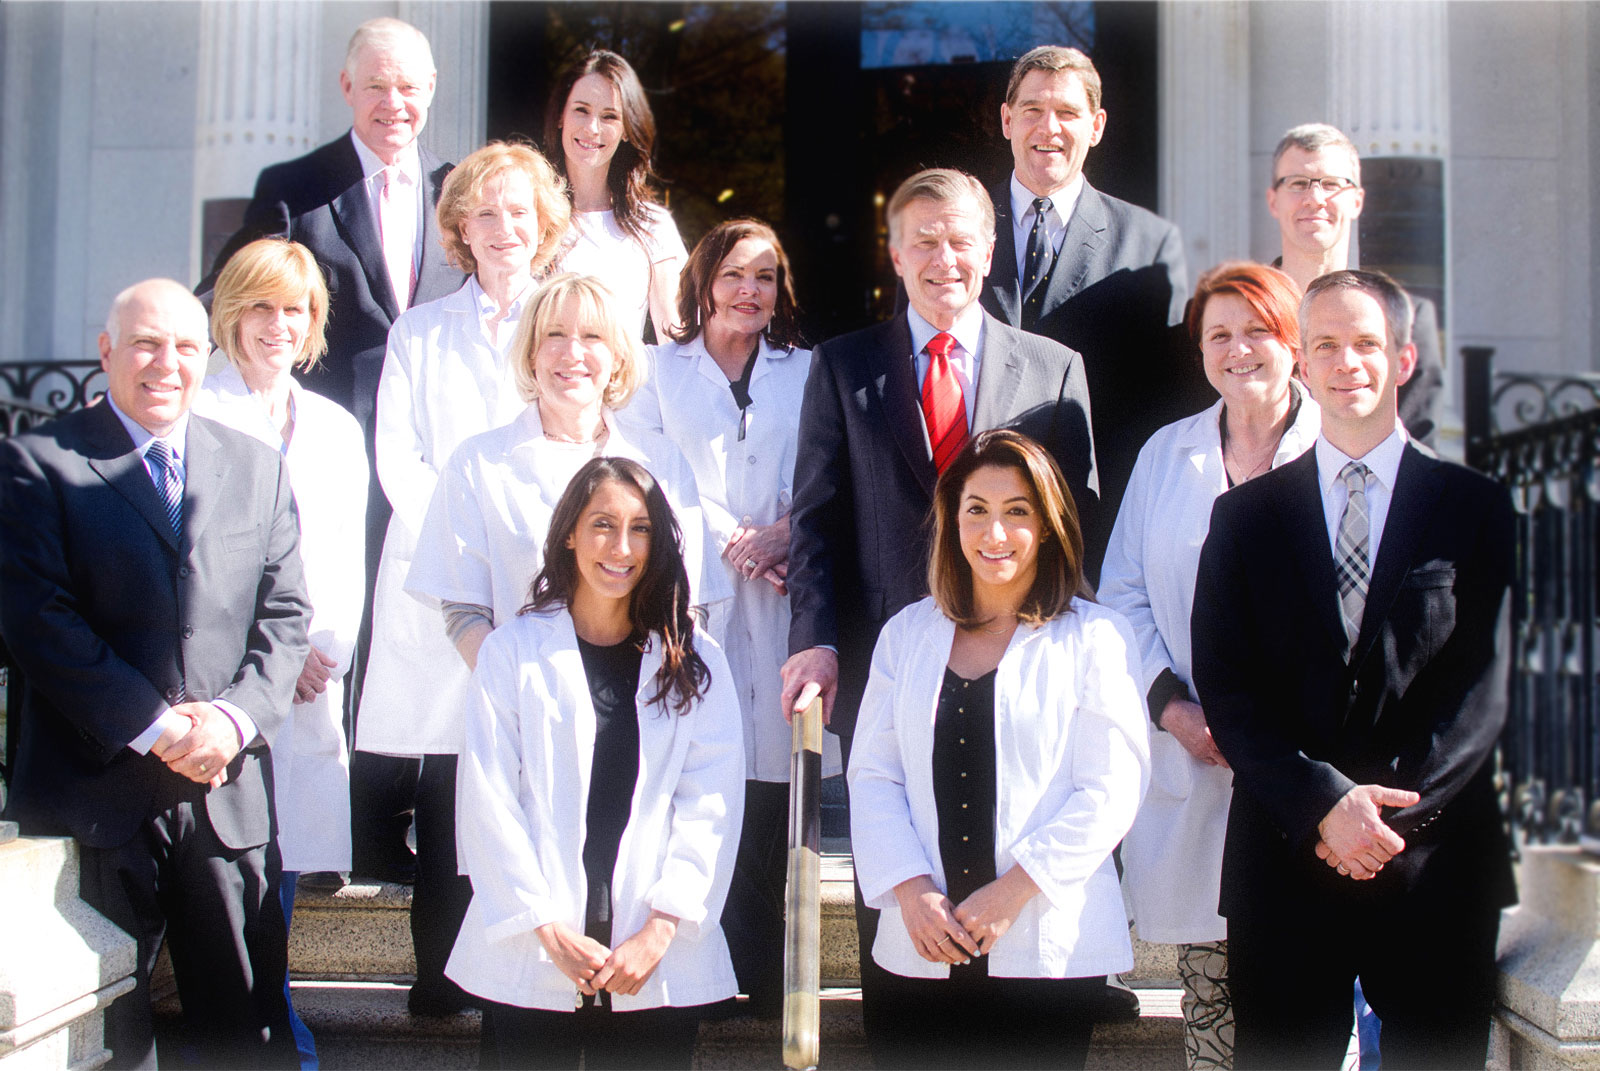 The Boston Center Trained & Certified Medical Staff of